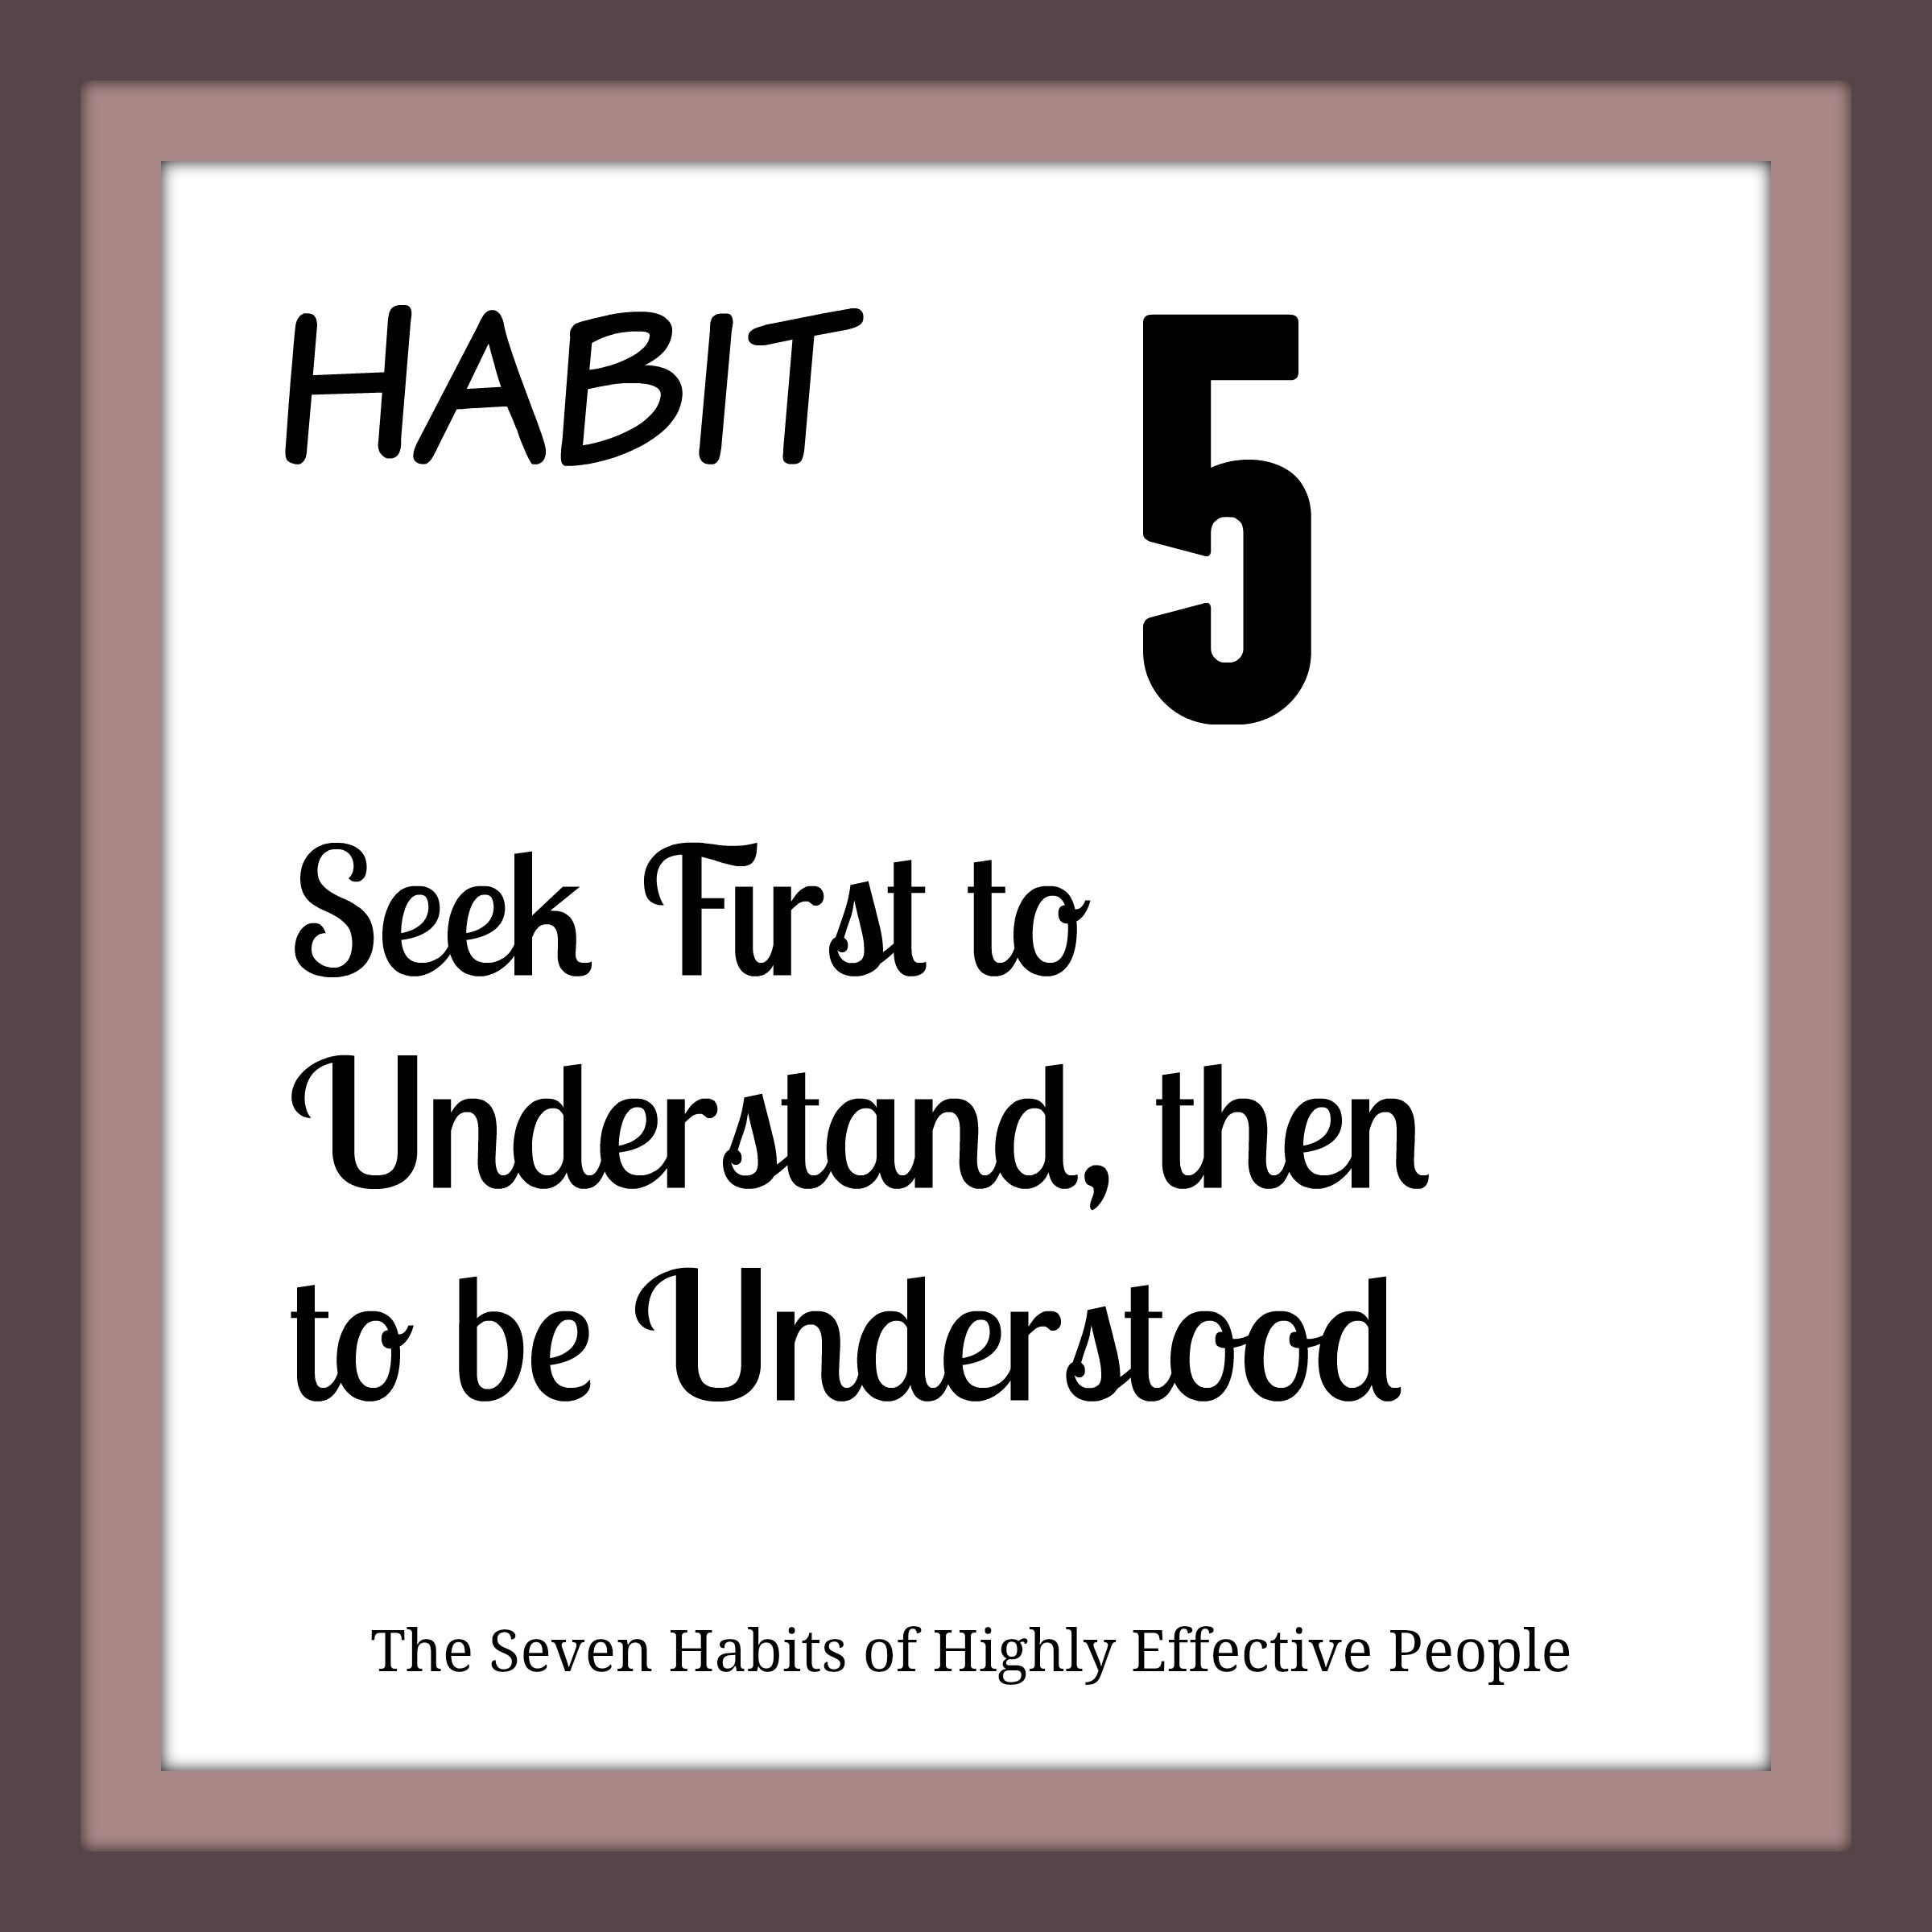 Habit 5 Of Stephen Covey S 7 Habits Of Highly Effective People